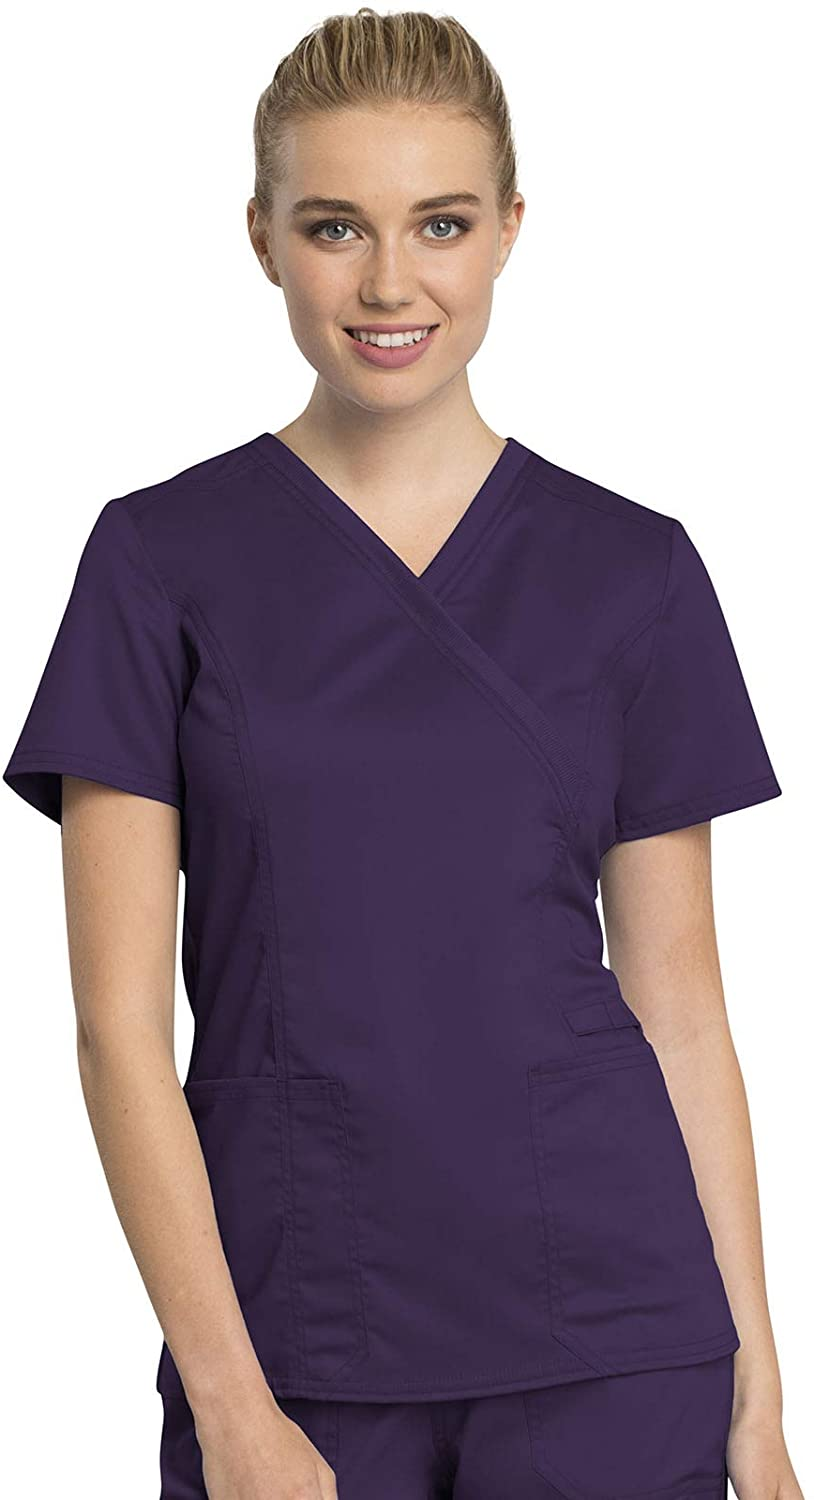 CHEROKEE Workwear WW Revolution Tech Mock Wrap Top, WW775AB, 5XL, Eggplant